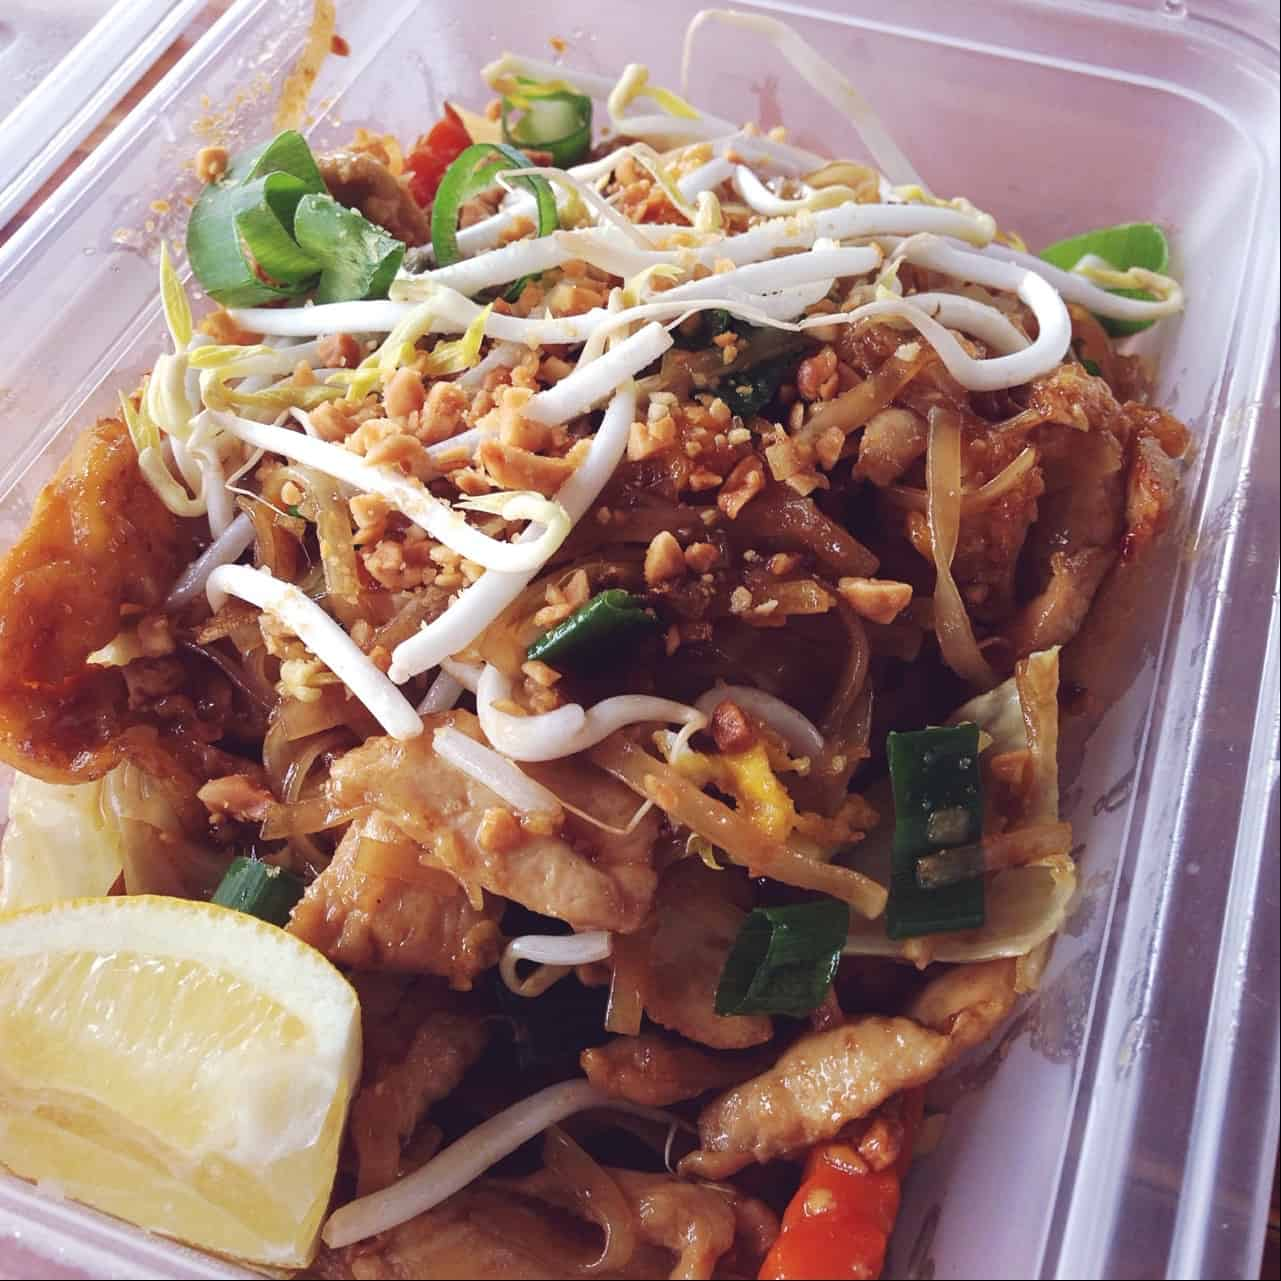 Pad Thai at The Bamboo Hut on State Highway 10.